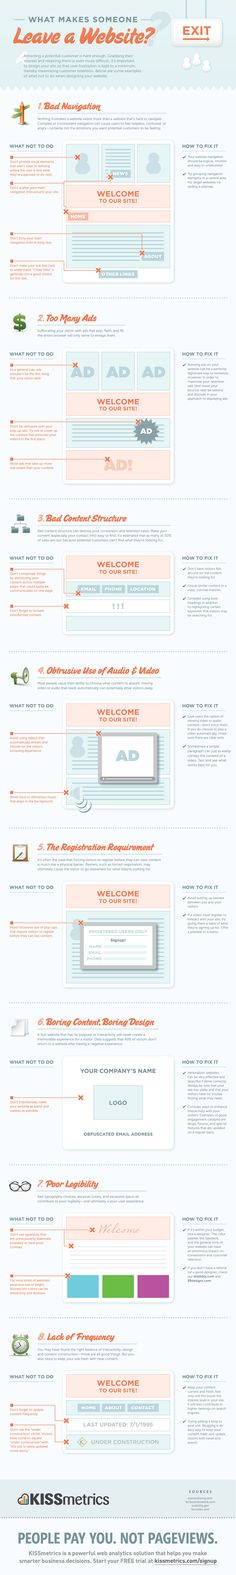 What makes someone leave a website? Some good things to consider for both web designers and UX designers.